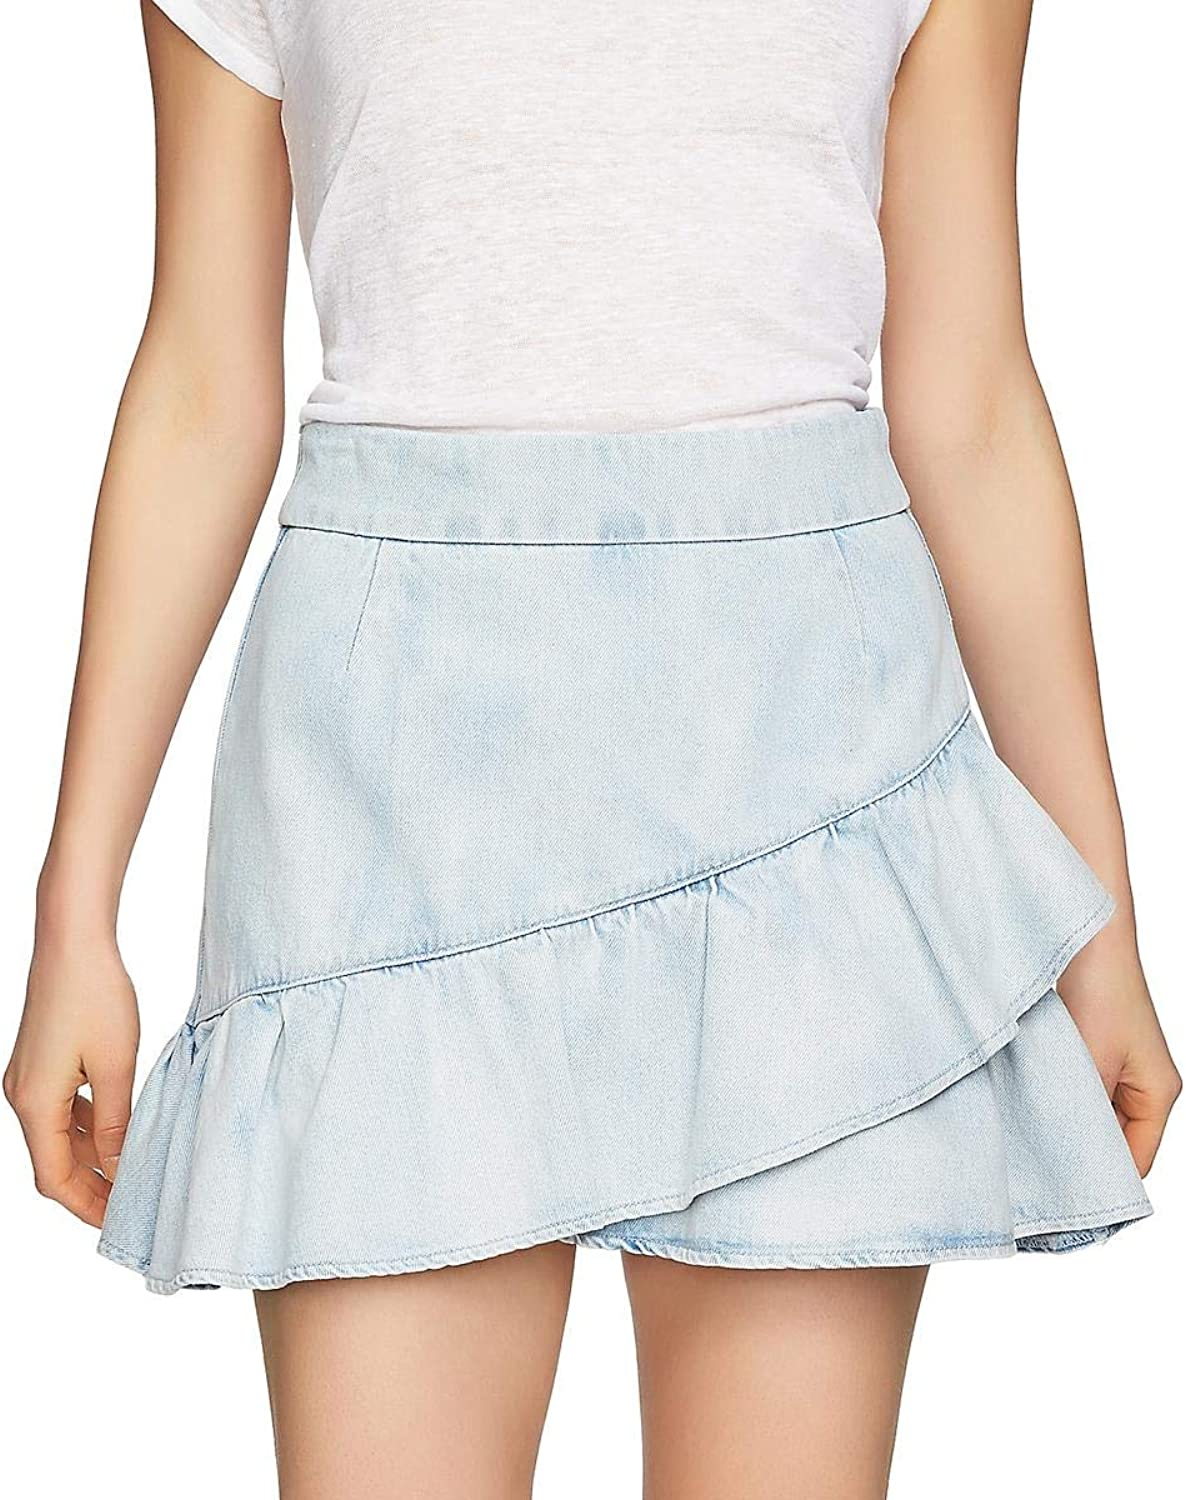 1.STATE Womens Ruffled Mini Denim Skirt